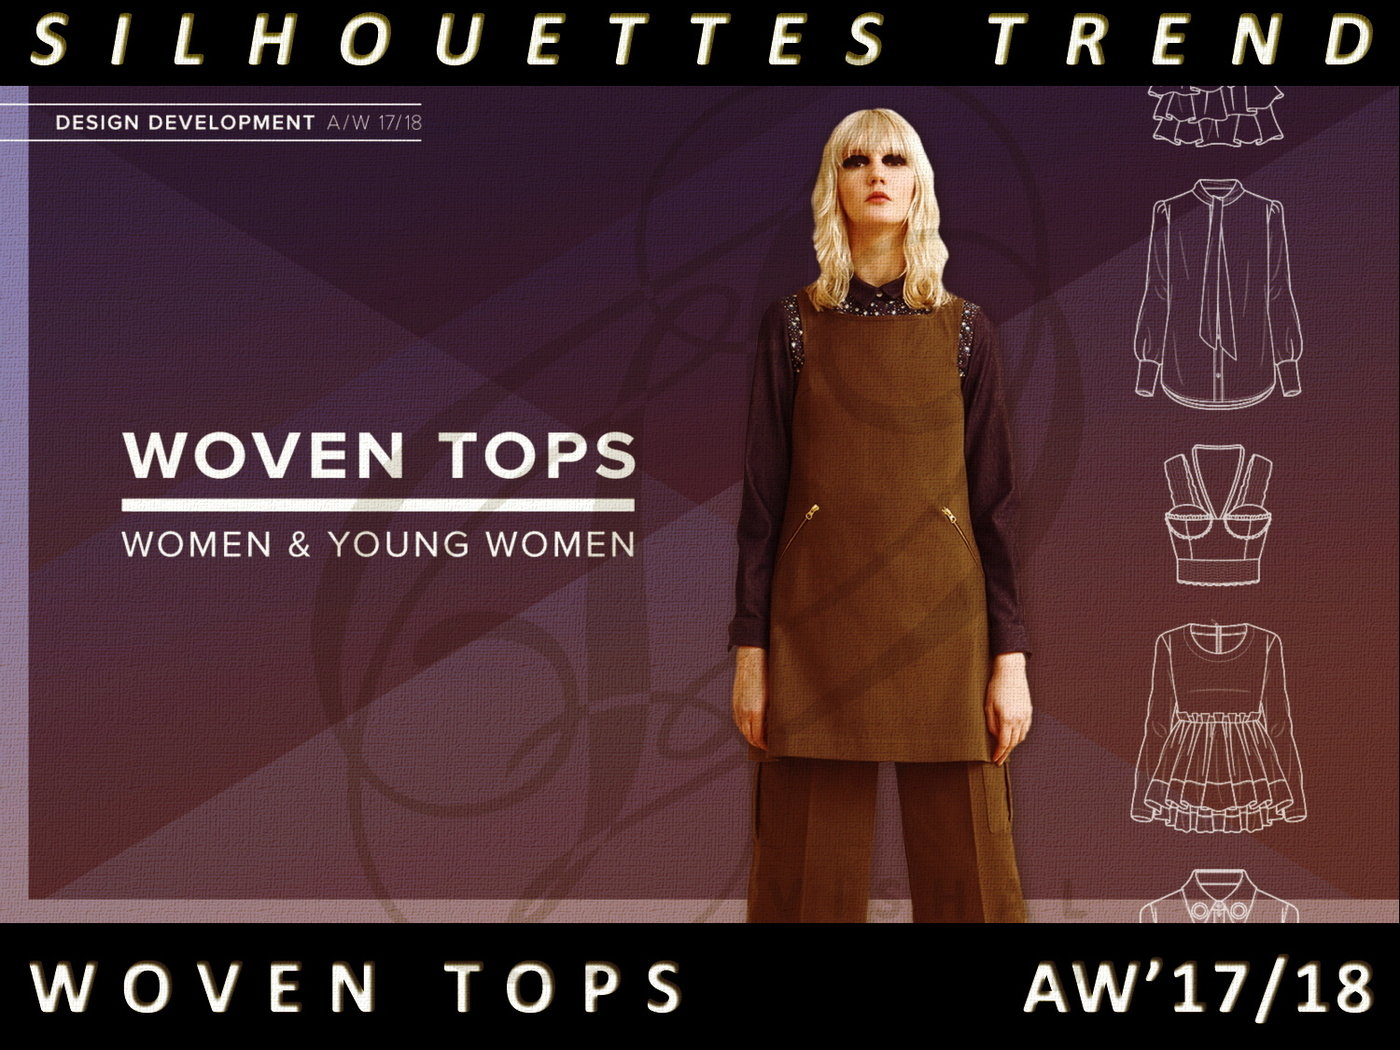 037e375d974cb WOMEN S WEAR-AUTUMN WINTER 2017 2018 TREND FORECAST ANALYSIS by Vishal  Anand at Coroflot.com